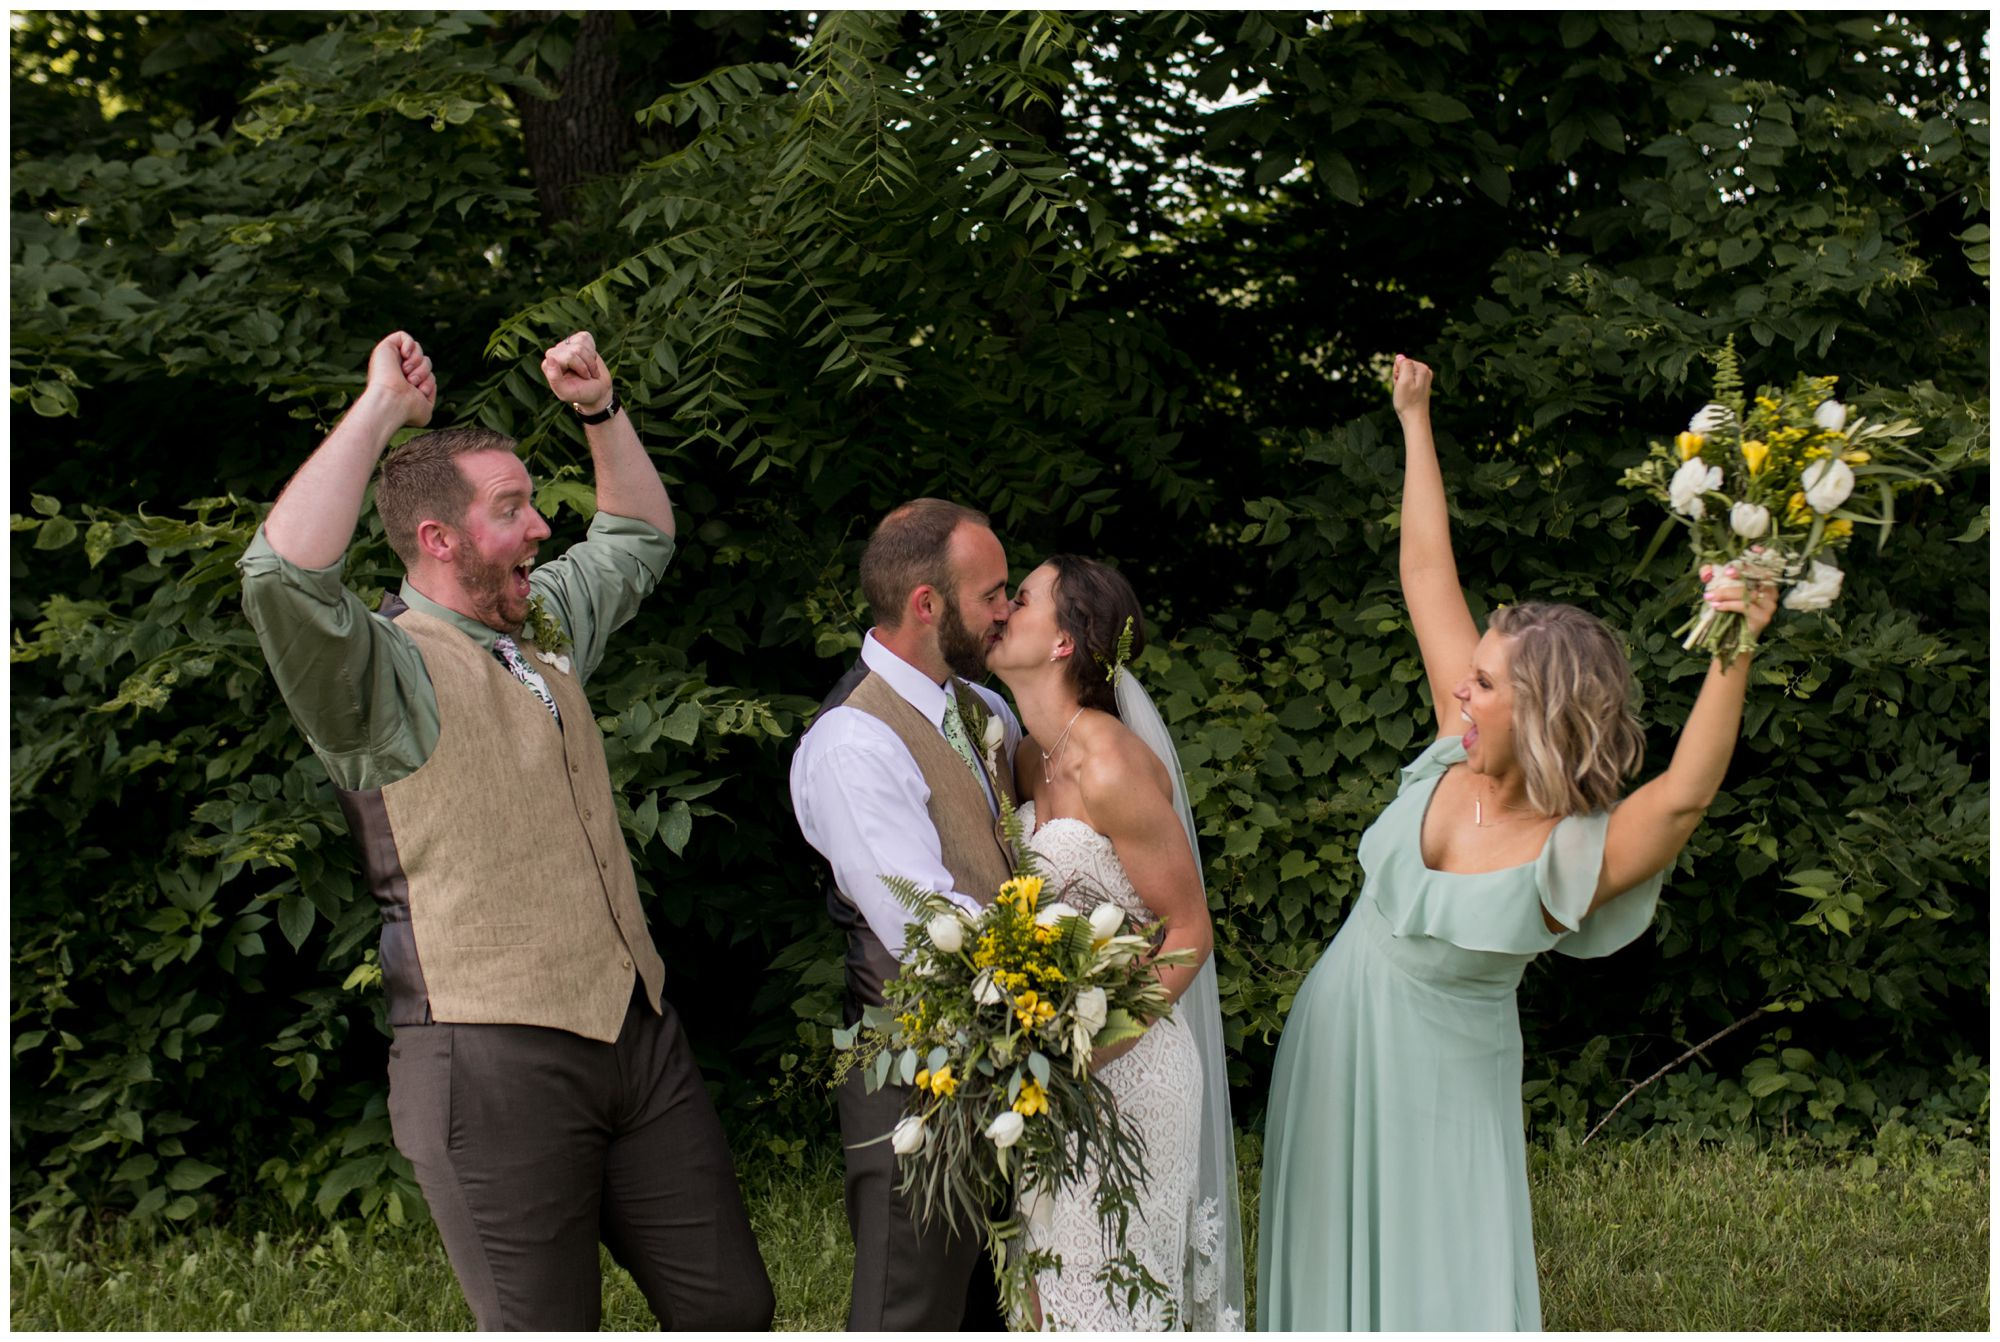 bride and groom kiss while wedding party cheers at Indianapolis backyard wedding